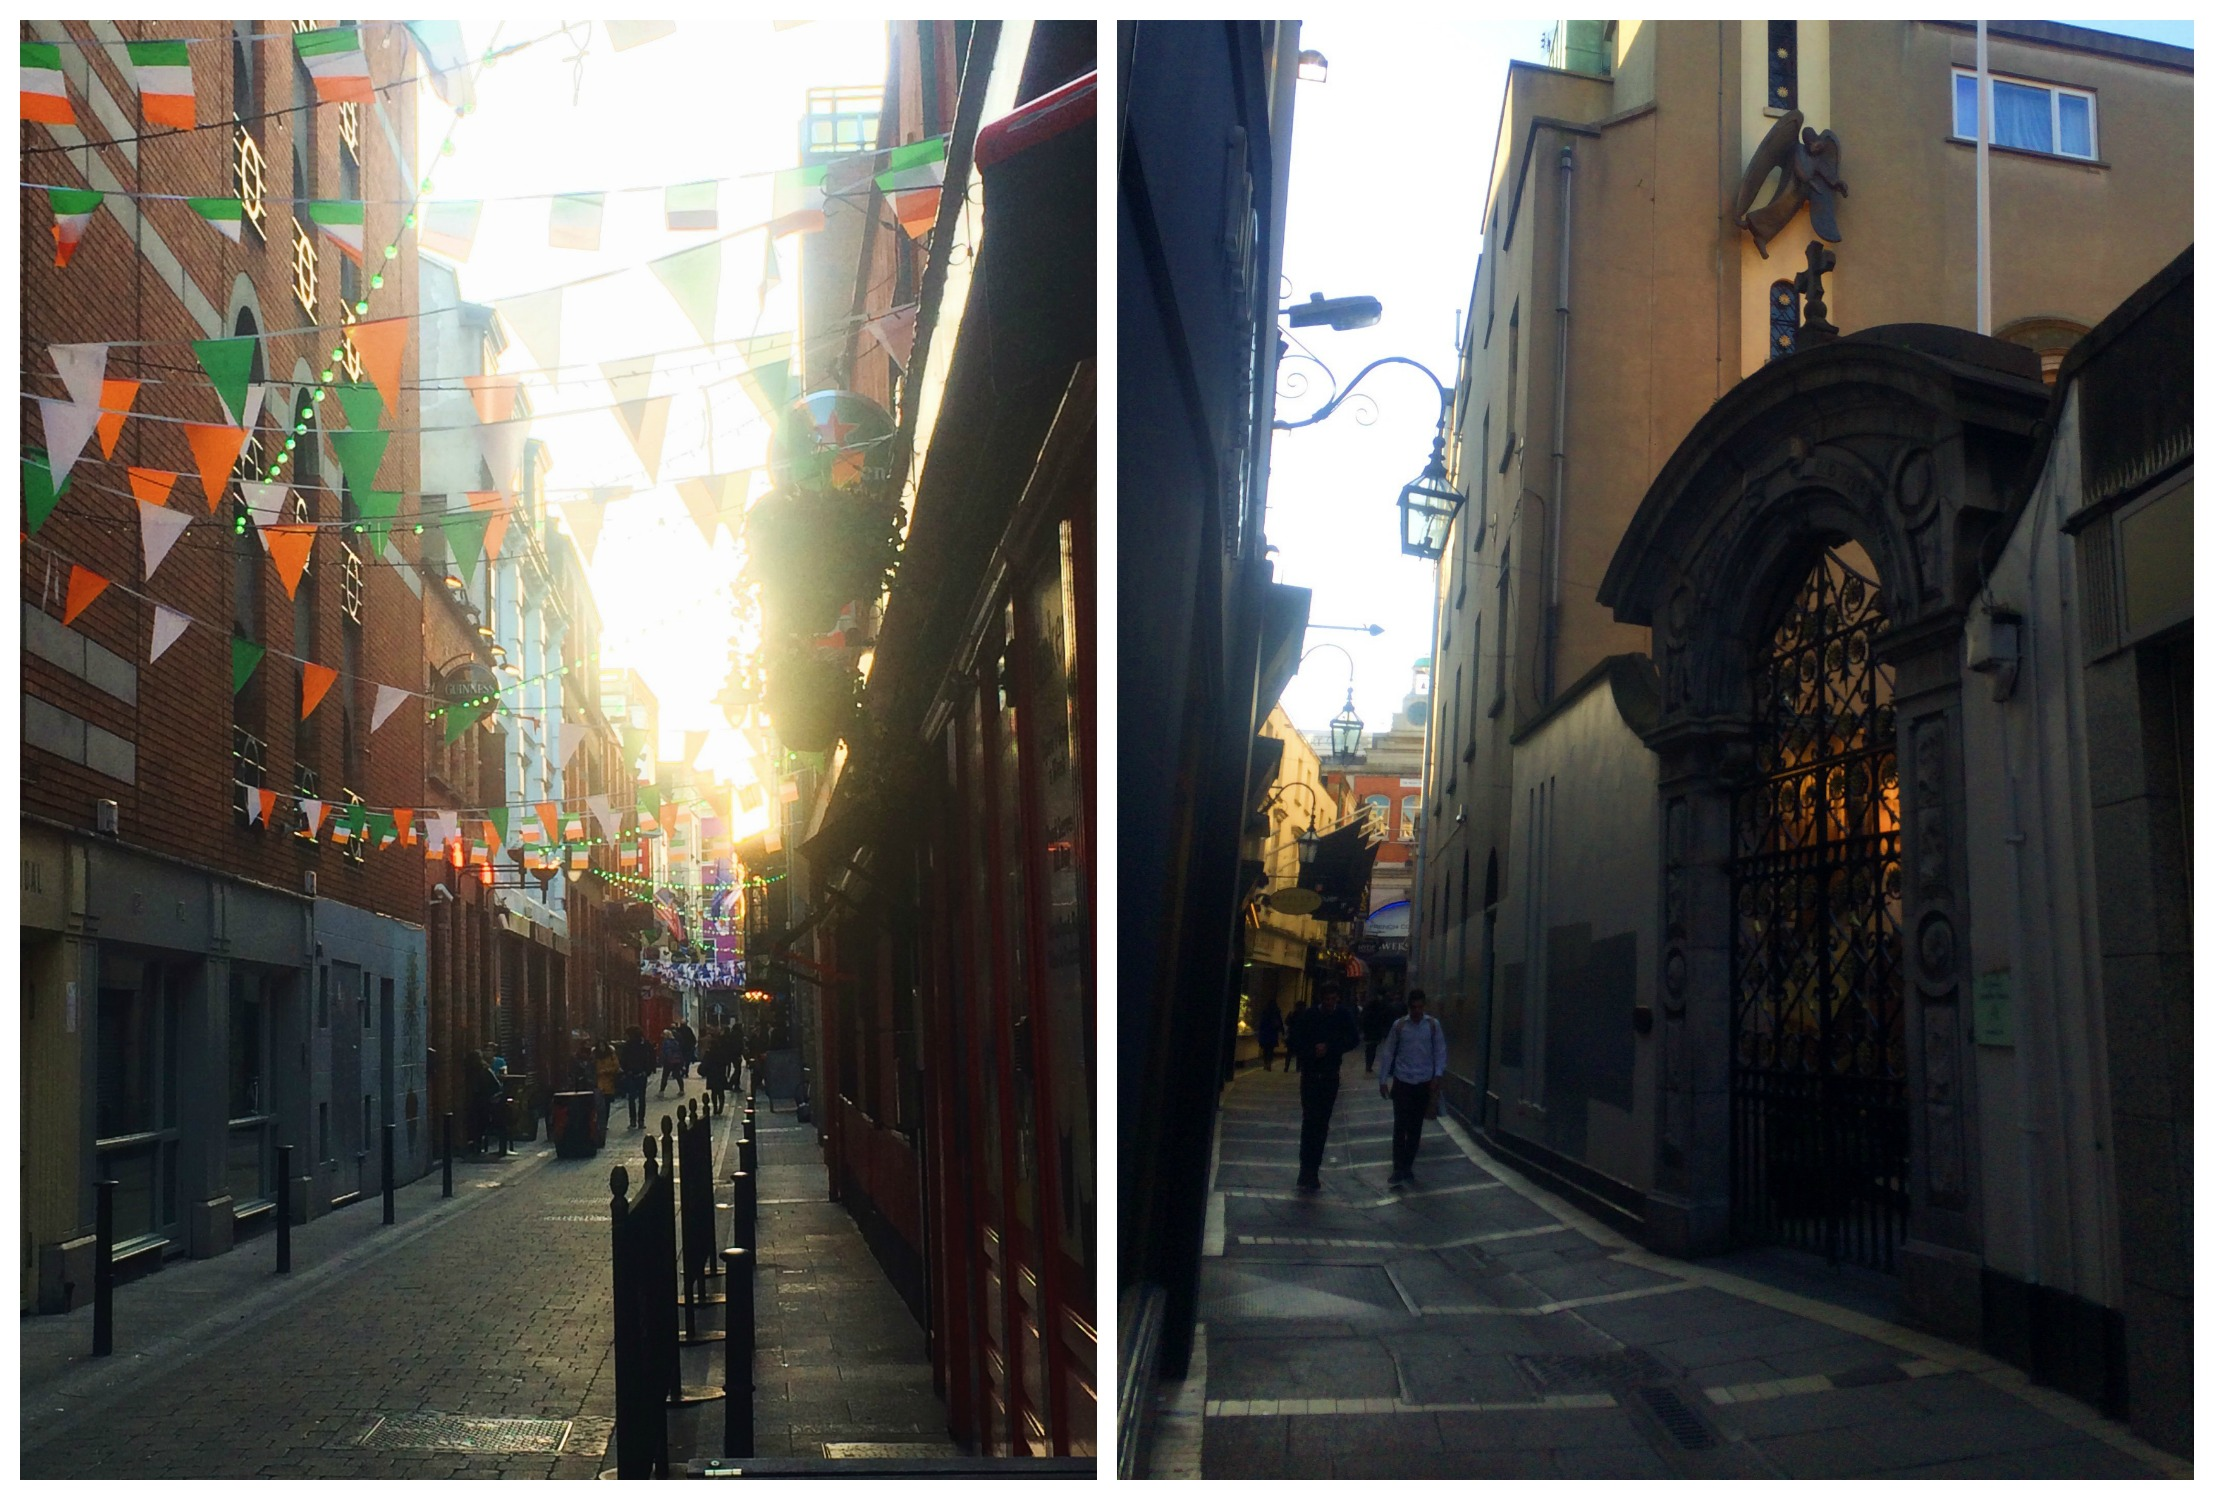 Irish Flags & Alleyways